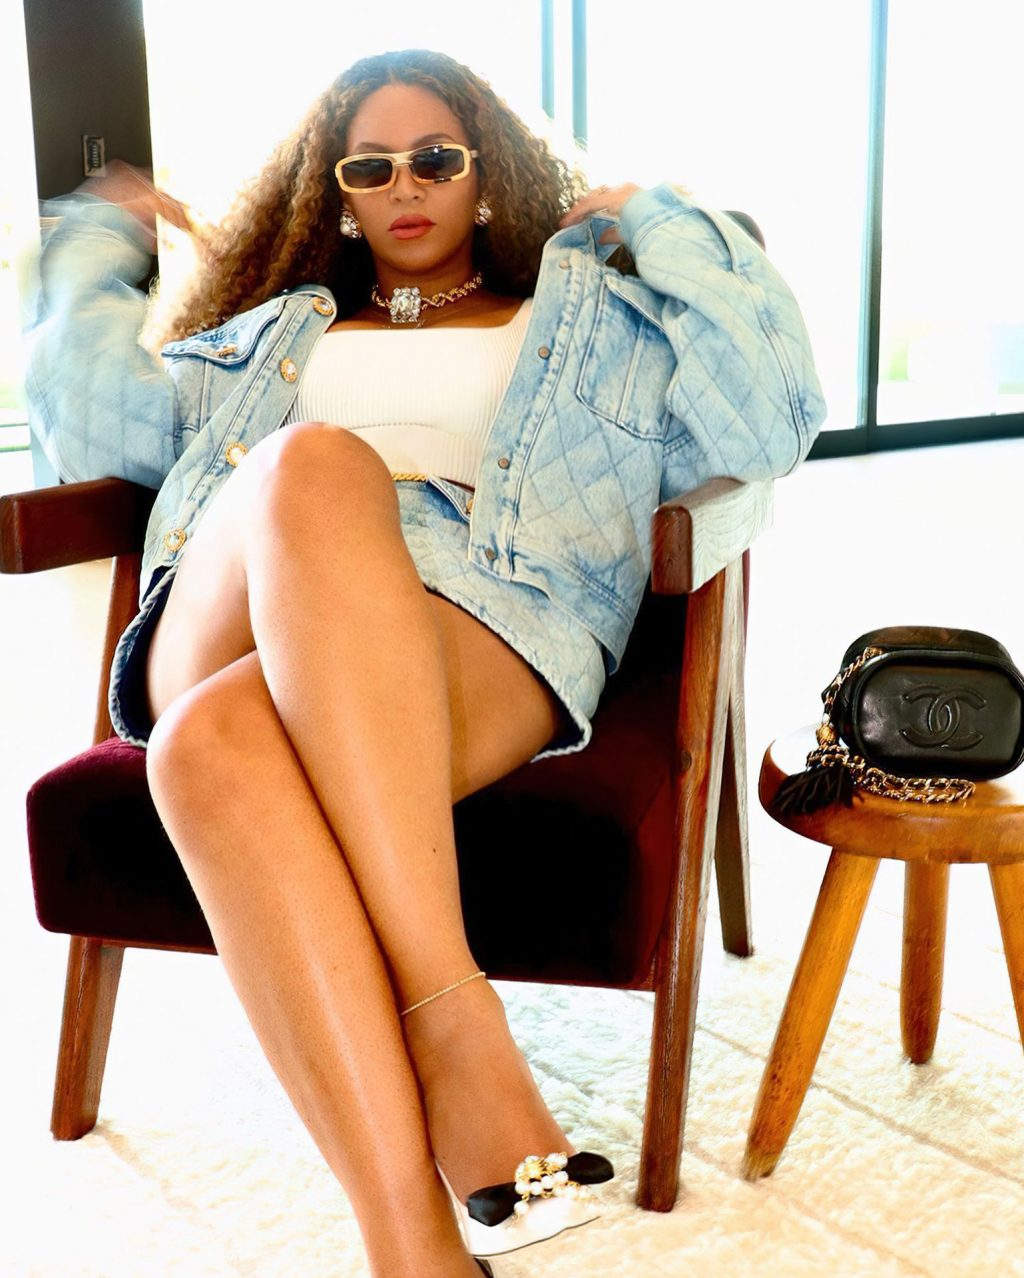 Beyonce Looks Sexy in a Denim Skirt (8 Photos)